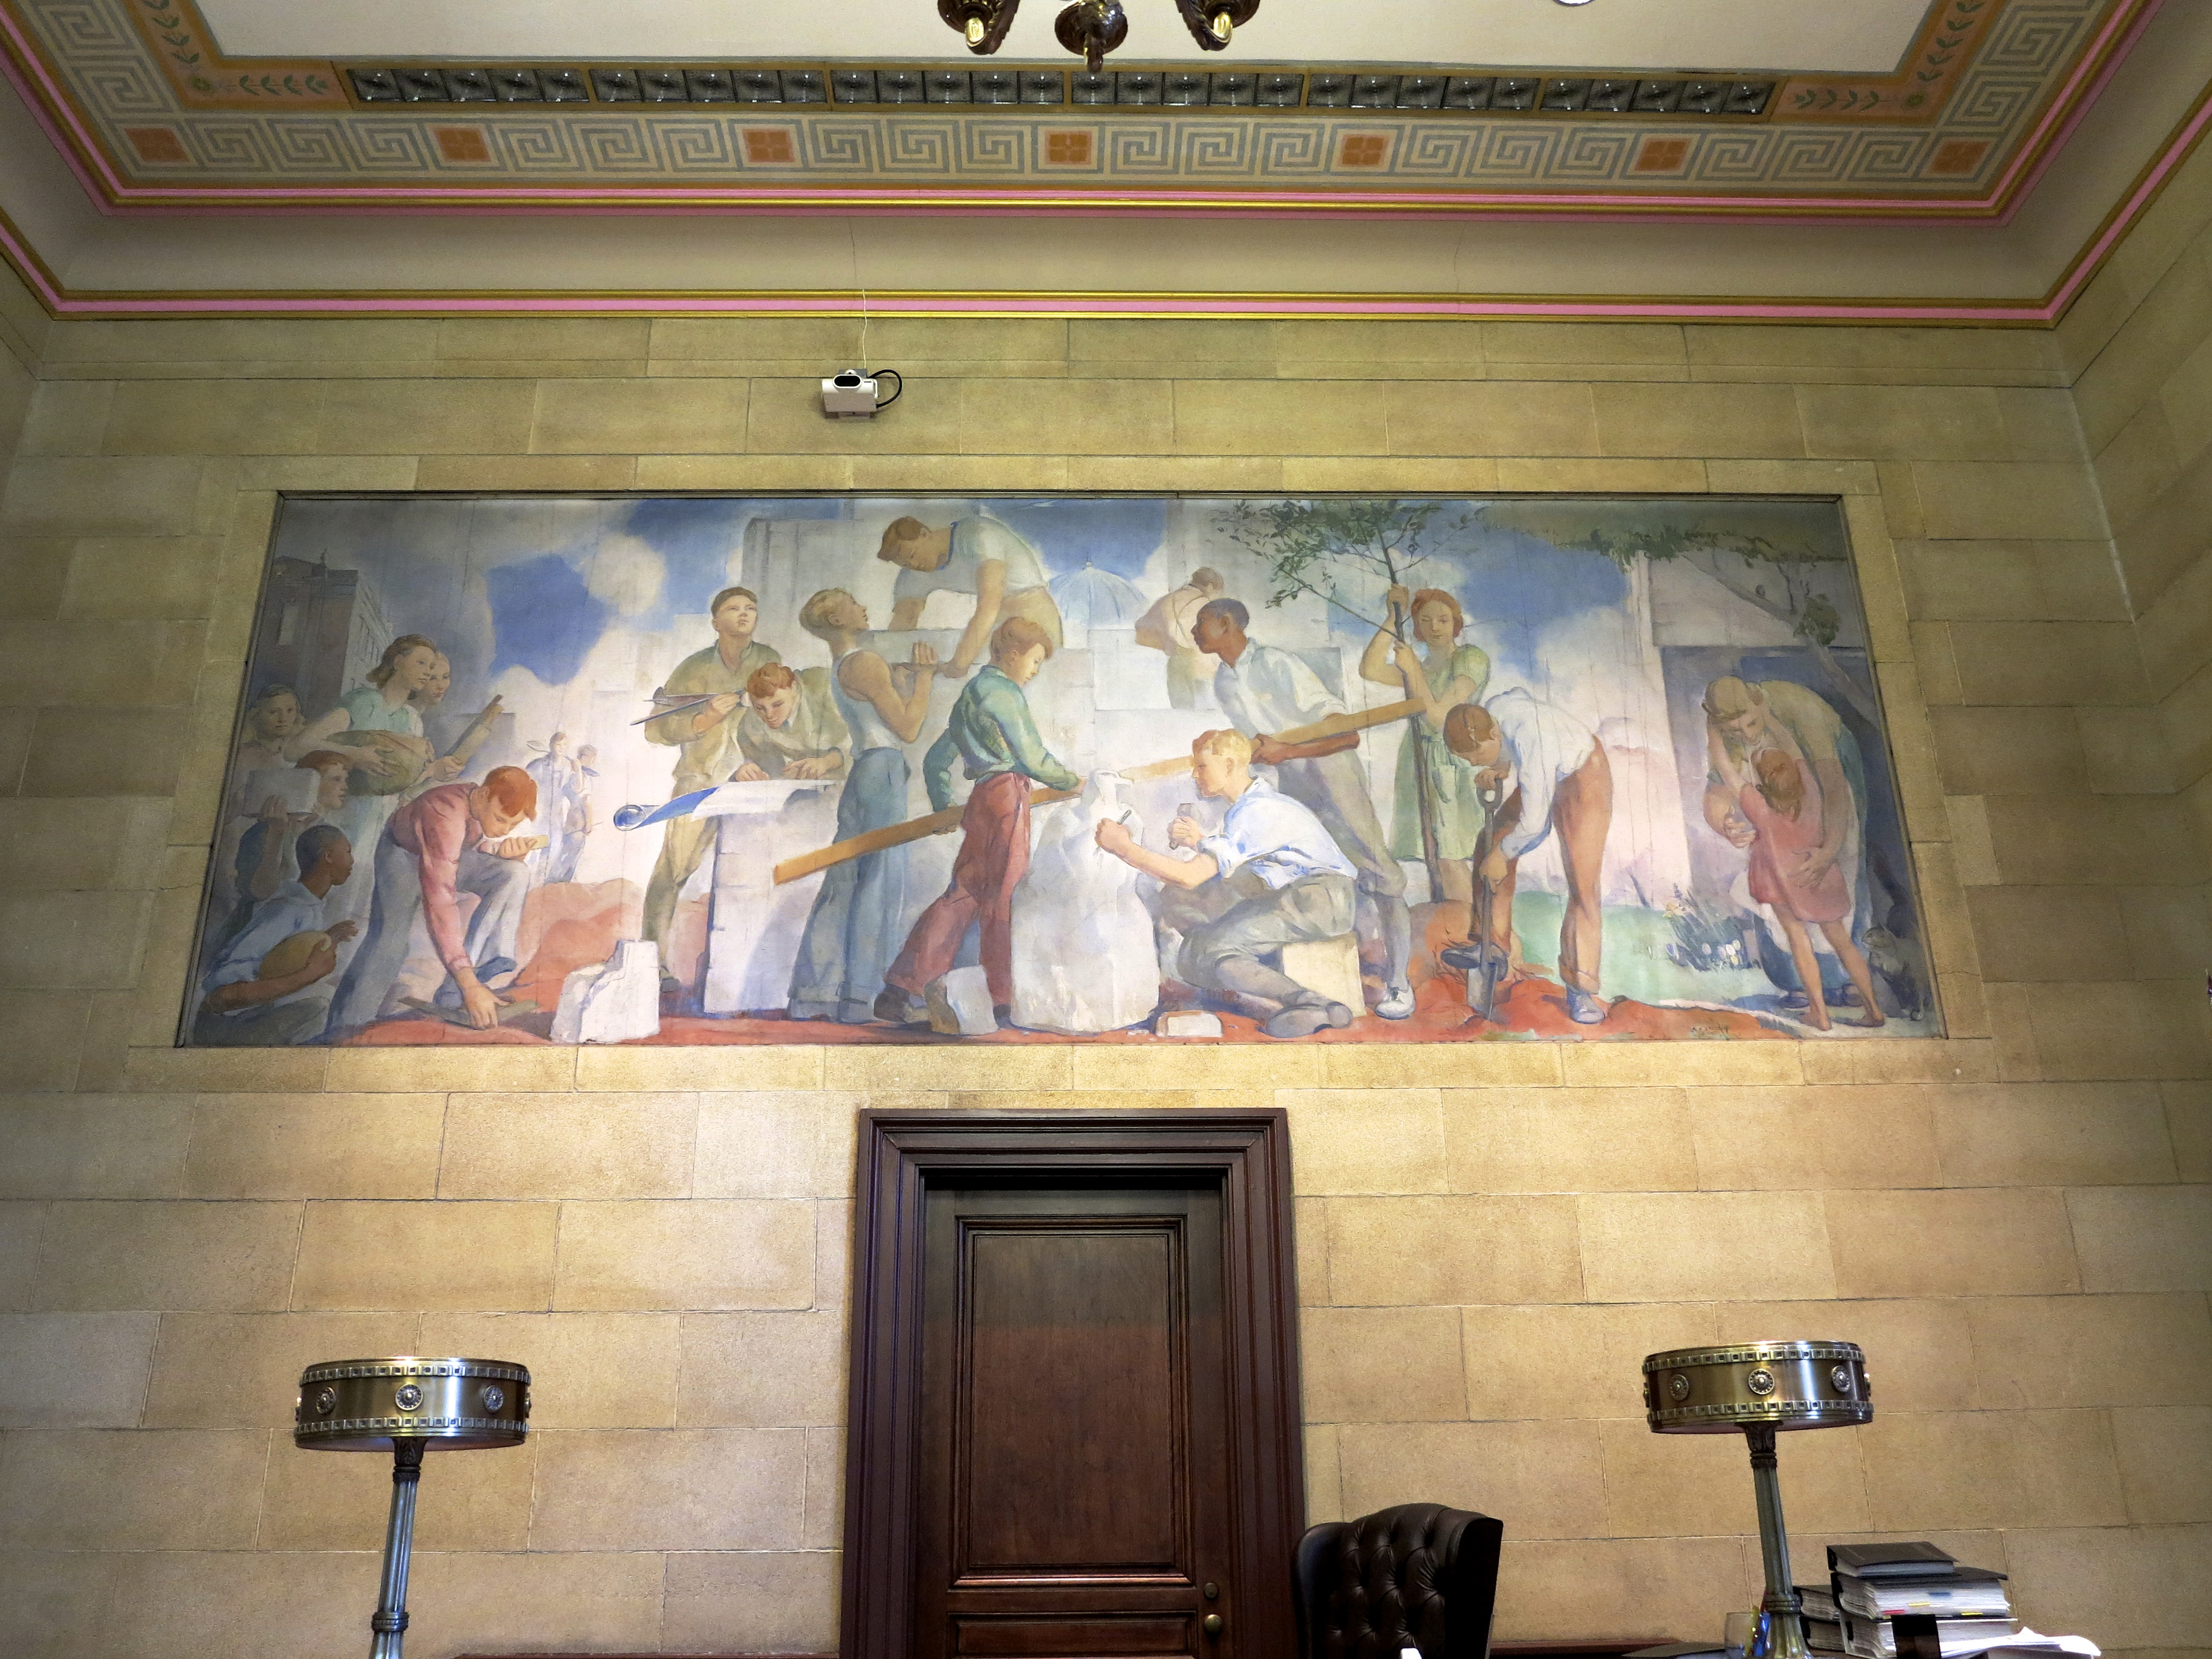 Courtoom A, Family Court. Mural by Alice Kent Stoddard